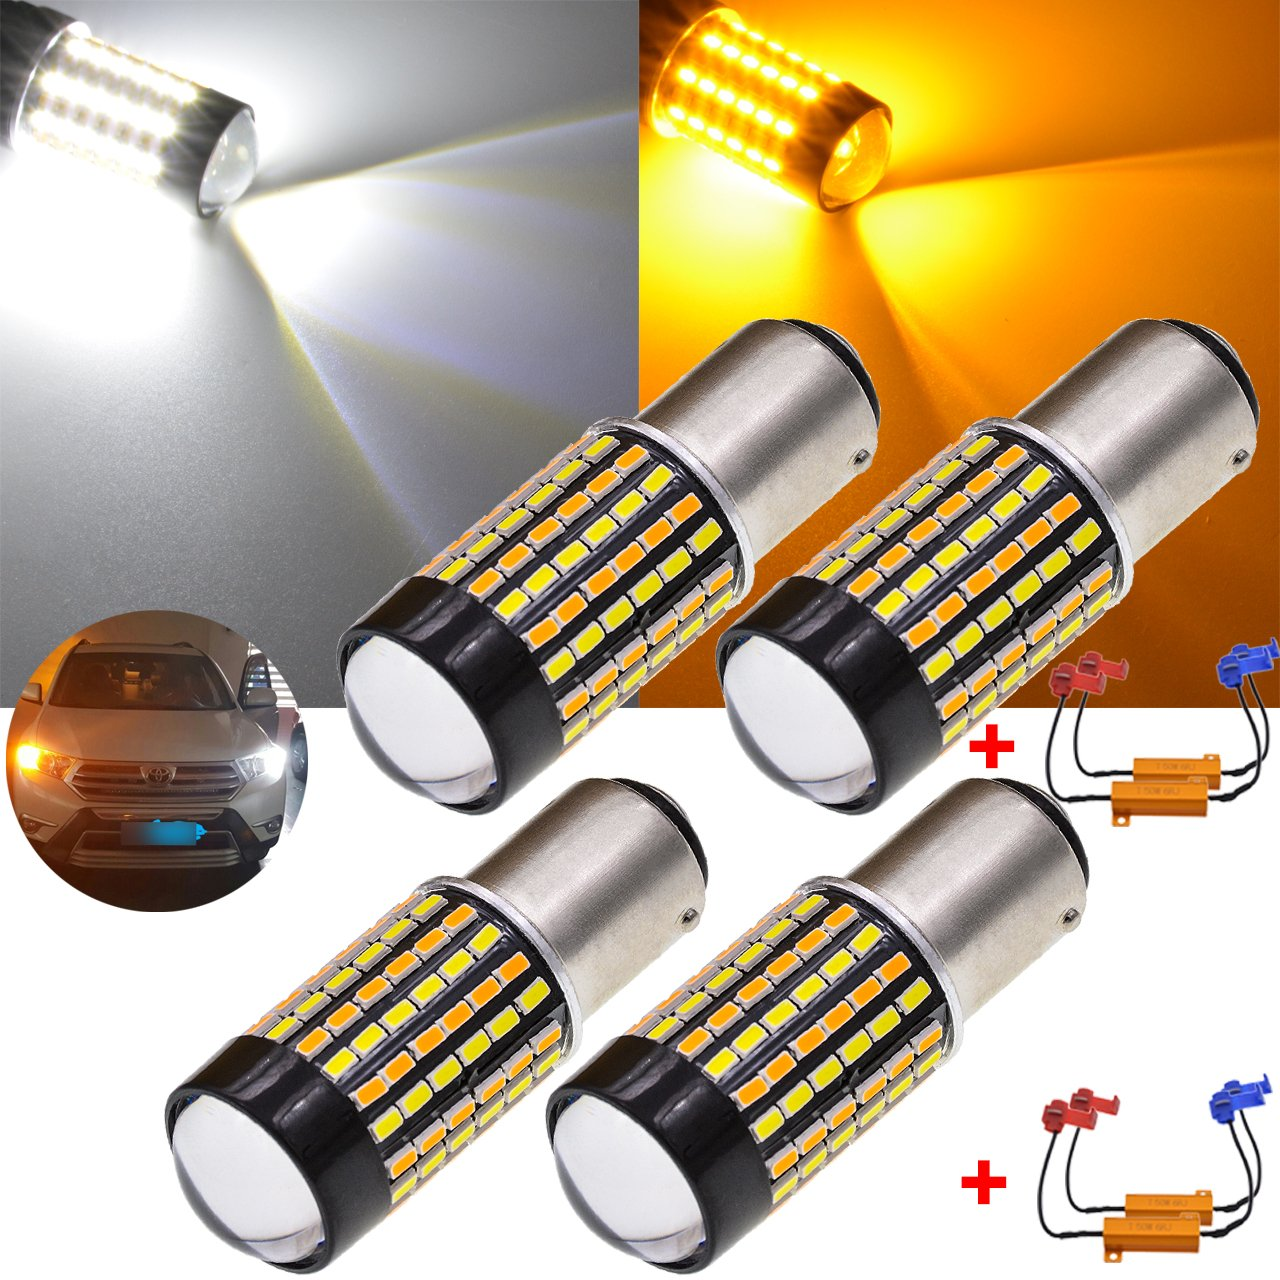 TUINCYN 7443 7444 992 T20 Switchback LED Turn Signals Bulb CANBUS with Resistors White/Amber Dual Color Switch Back Extremely Bright 120-EX Chipsets 6500K DRL LED Bulb(Pack of 2)